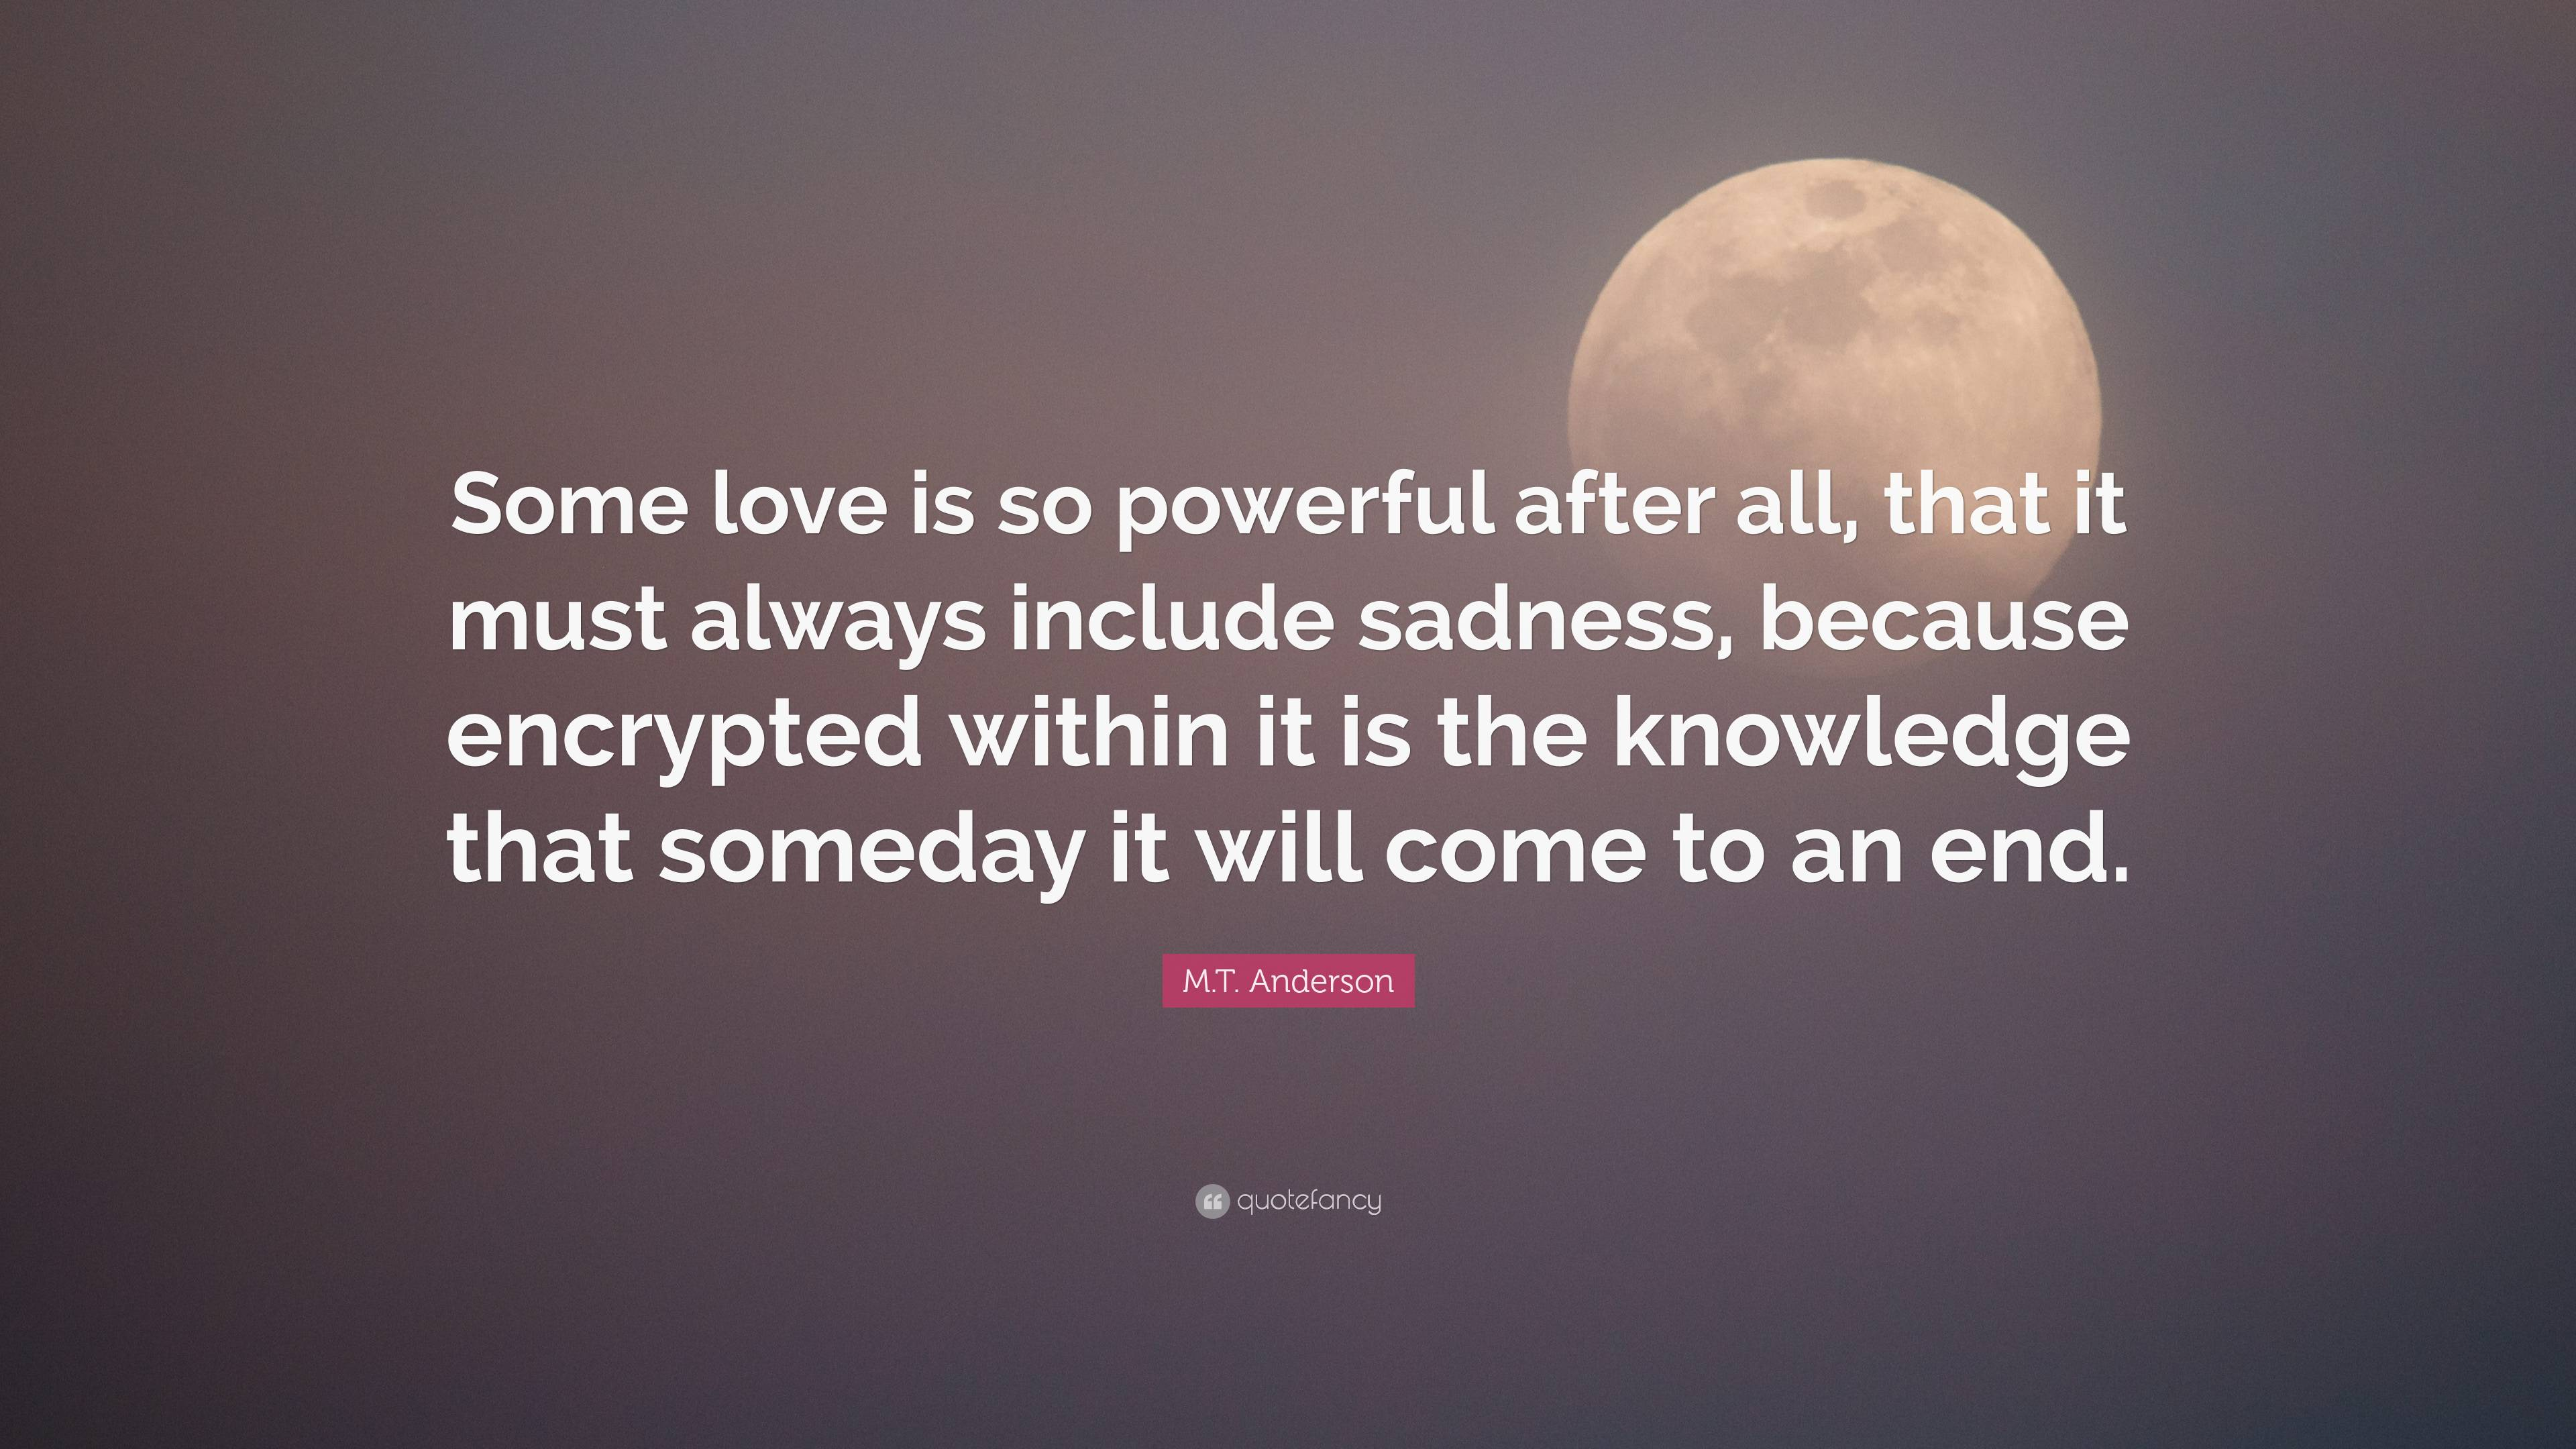 M T Anderson Quote Some Love Is So Powerful After All That It Must Always Include Sadness Because Encrypted Within It Is The Knowledge Th 2 Wallpapers Quotefancy